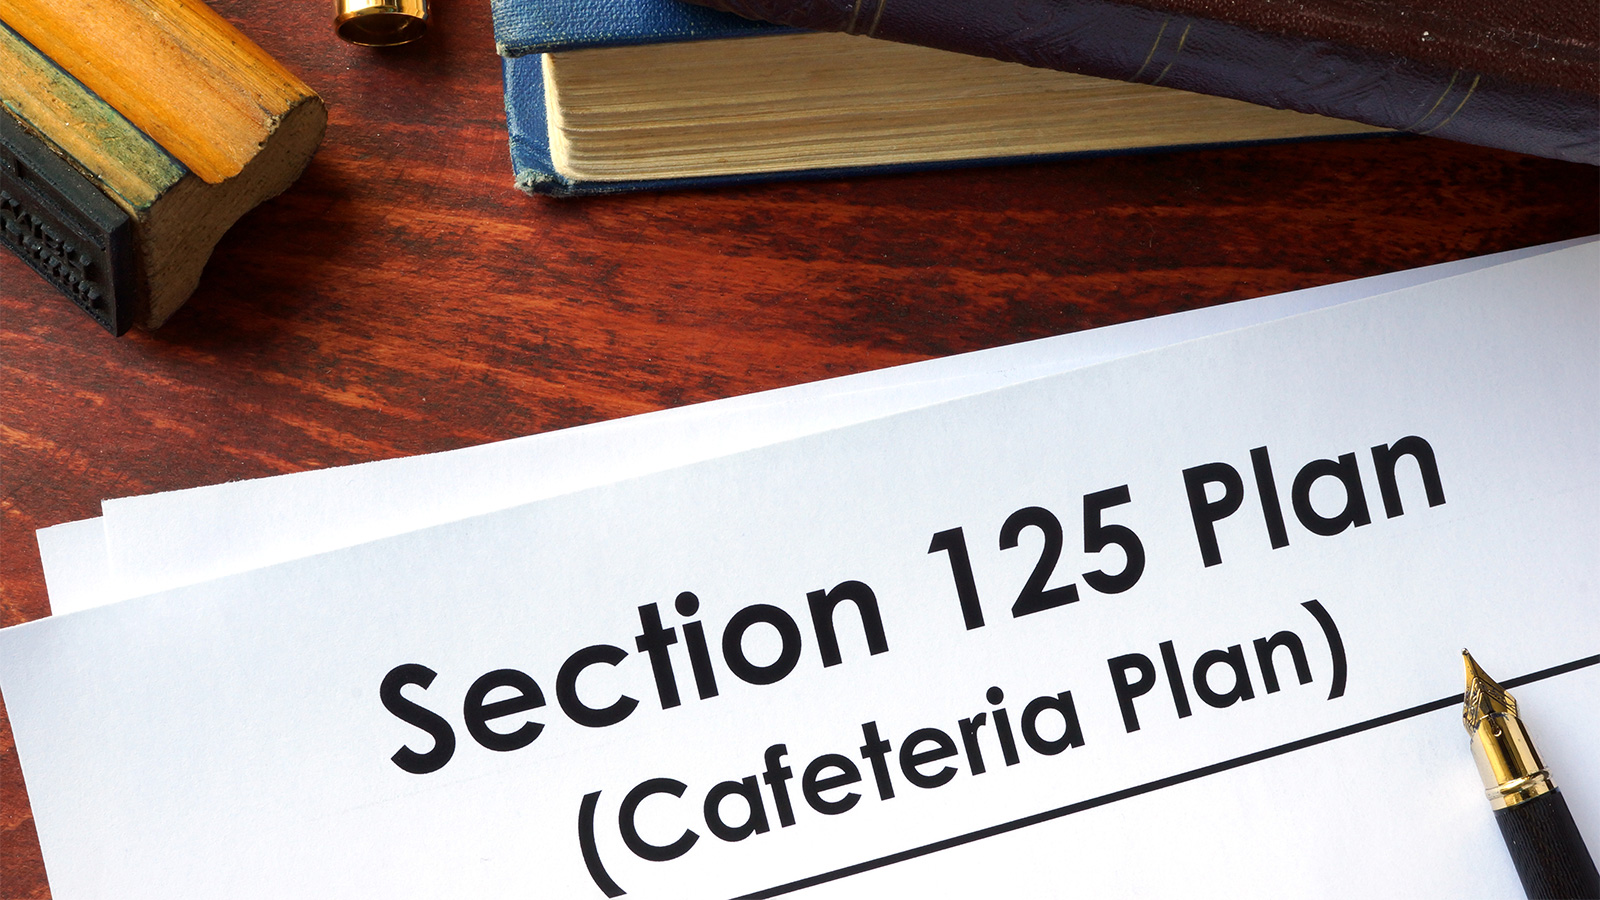 IRS issues new IRS rules impacting cafeteria plans